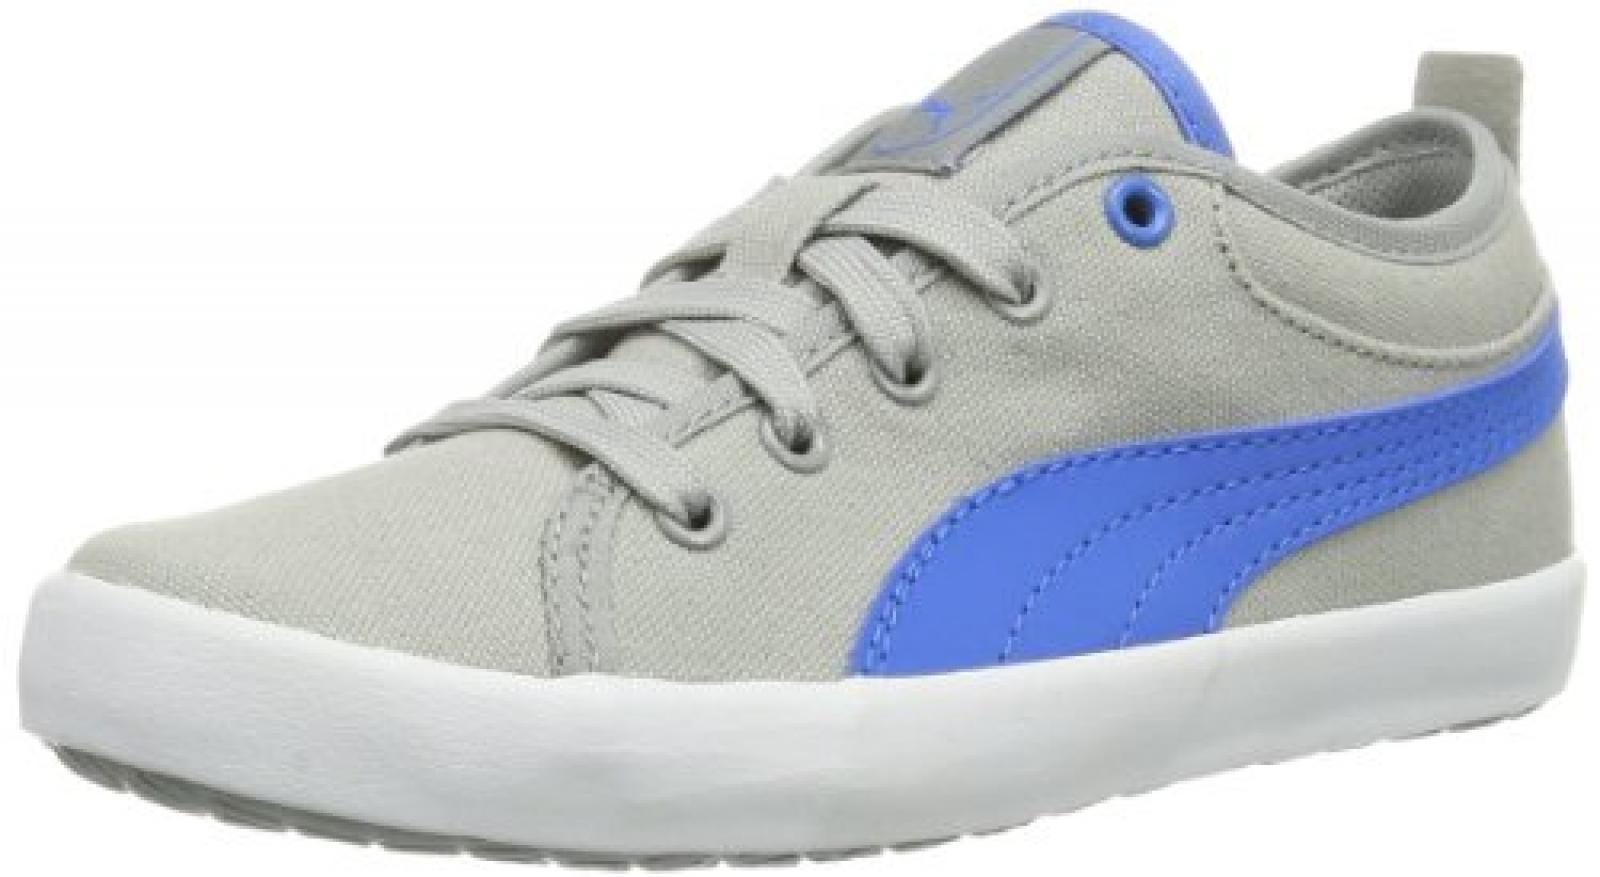 Puma Elsu Bluchertoe Canvas Jr 356013 Unisex-Kinder Sneaker